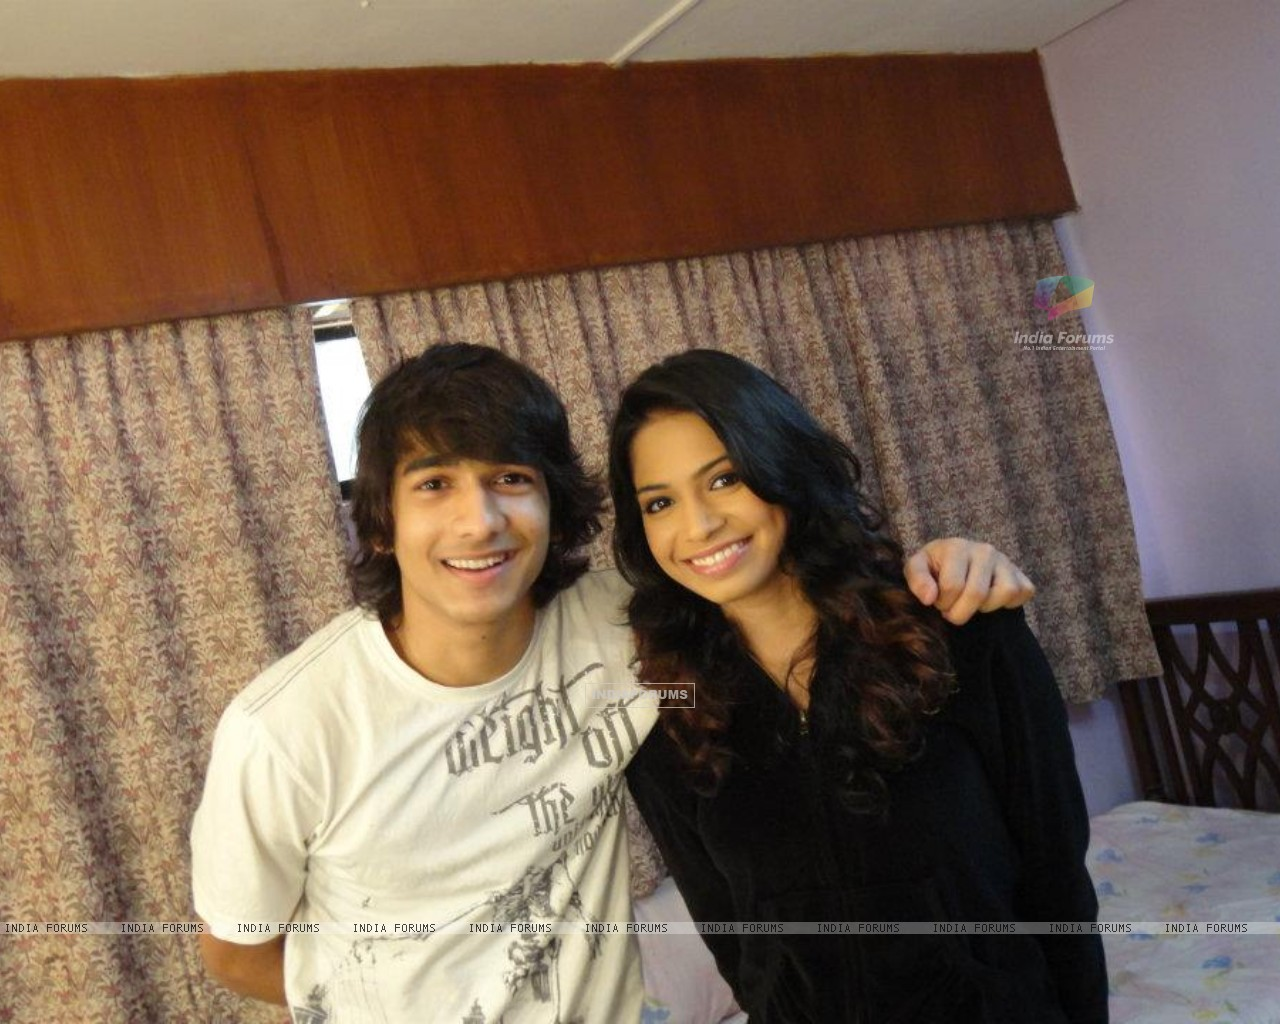 Sneha and Shantanu celebrating one year of SwaRon in Dil, Dosti Dance (196391) size:1280x1024